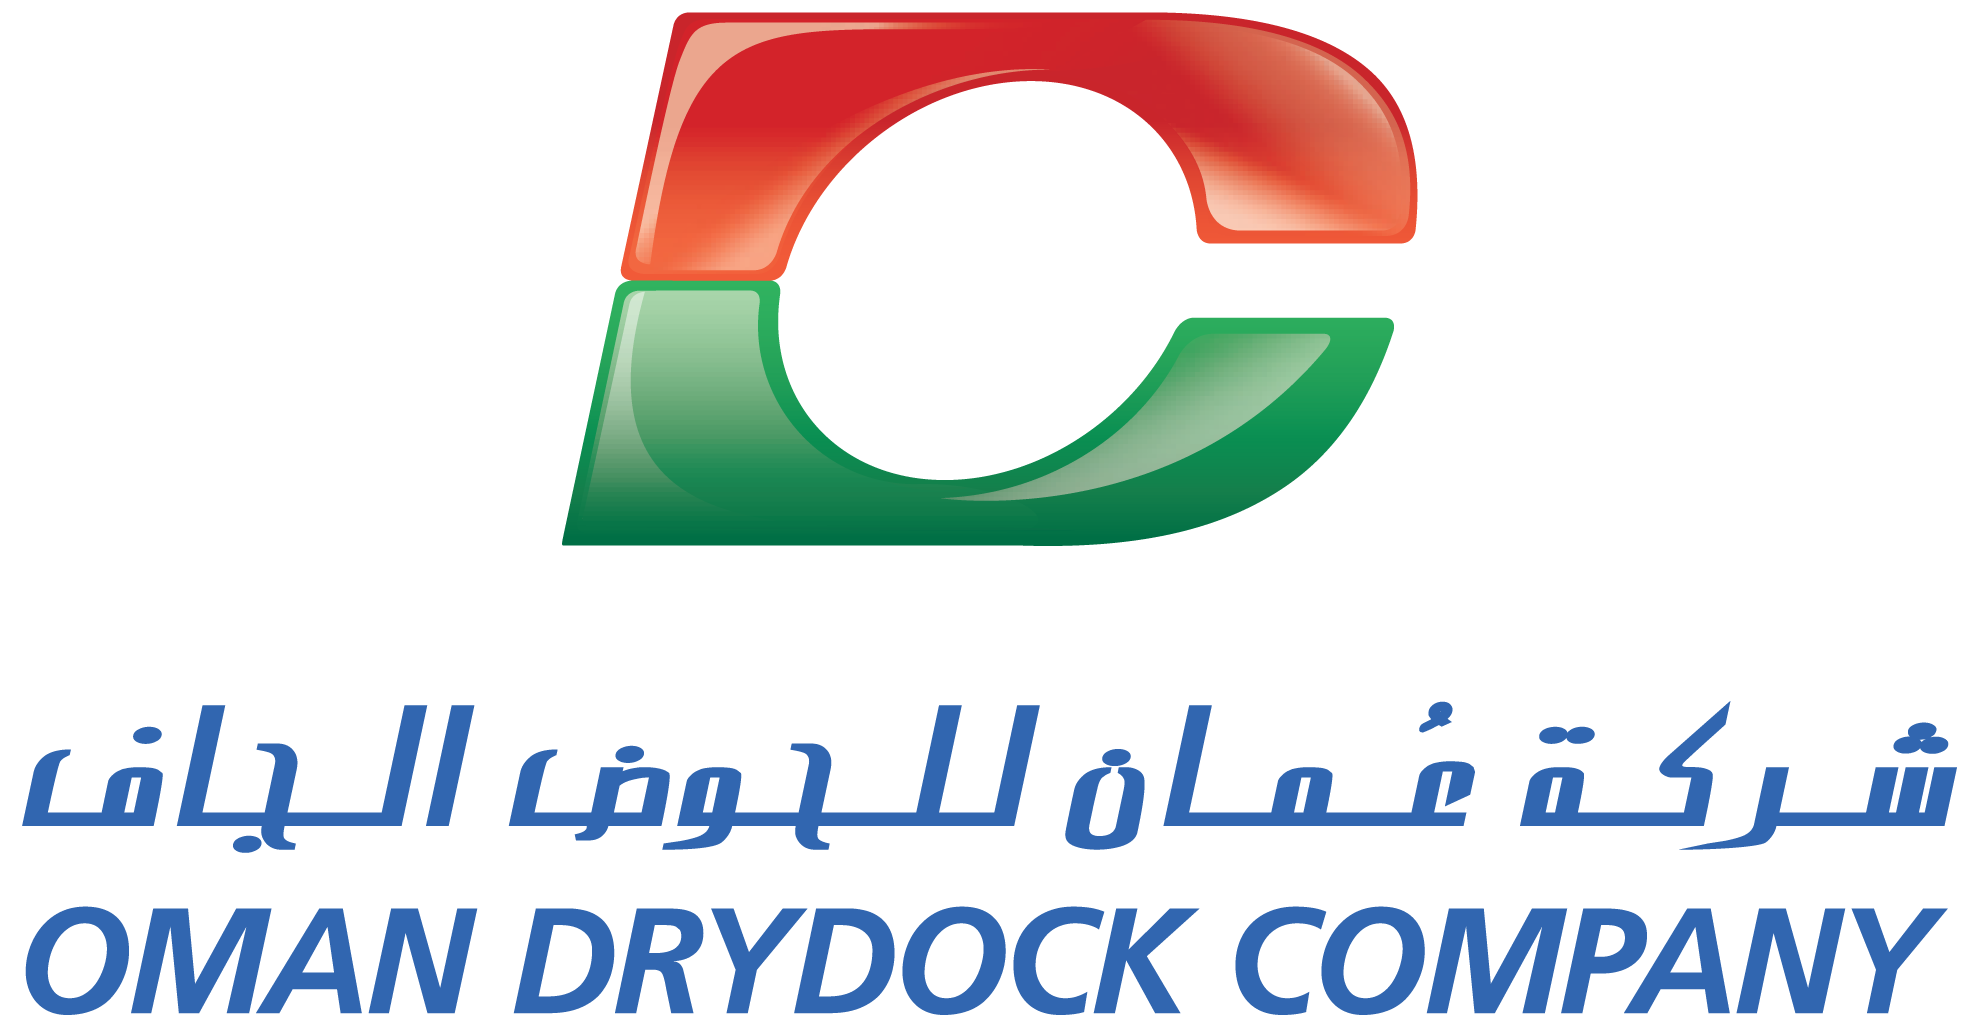 Vertical vector green corporate background. Oman drydock company odc